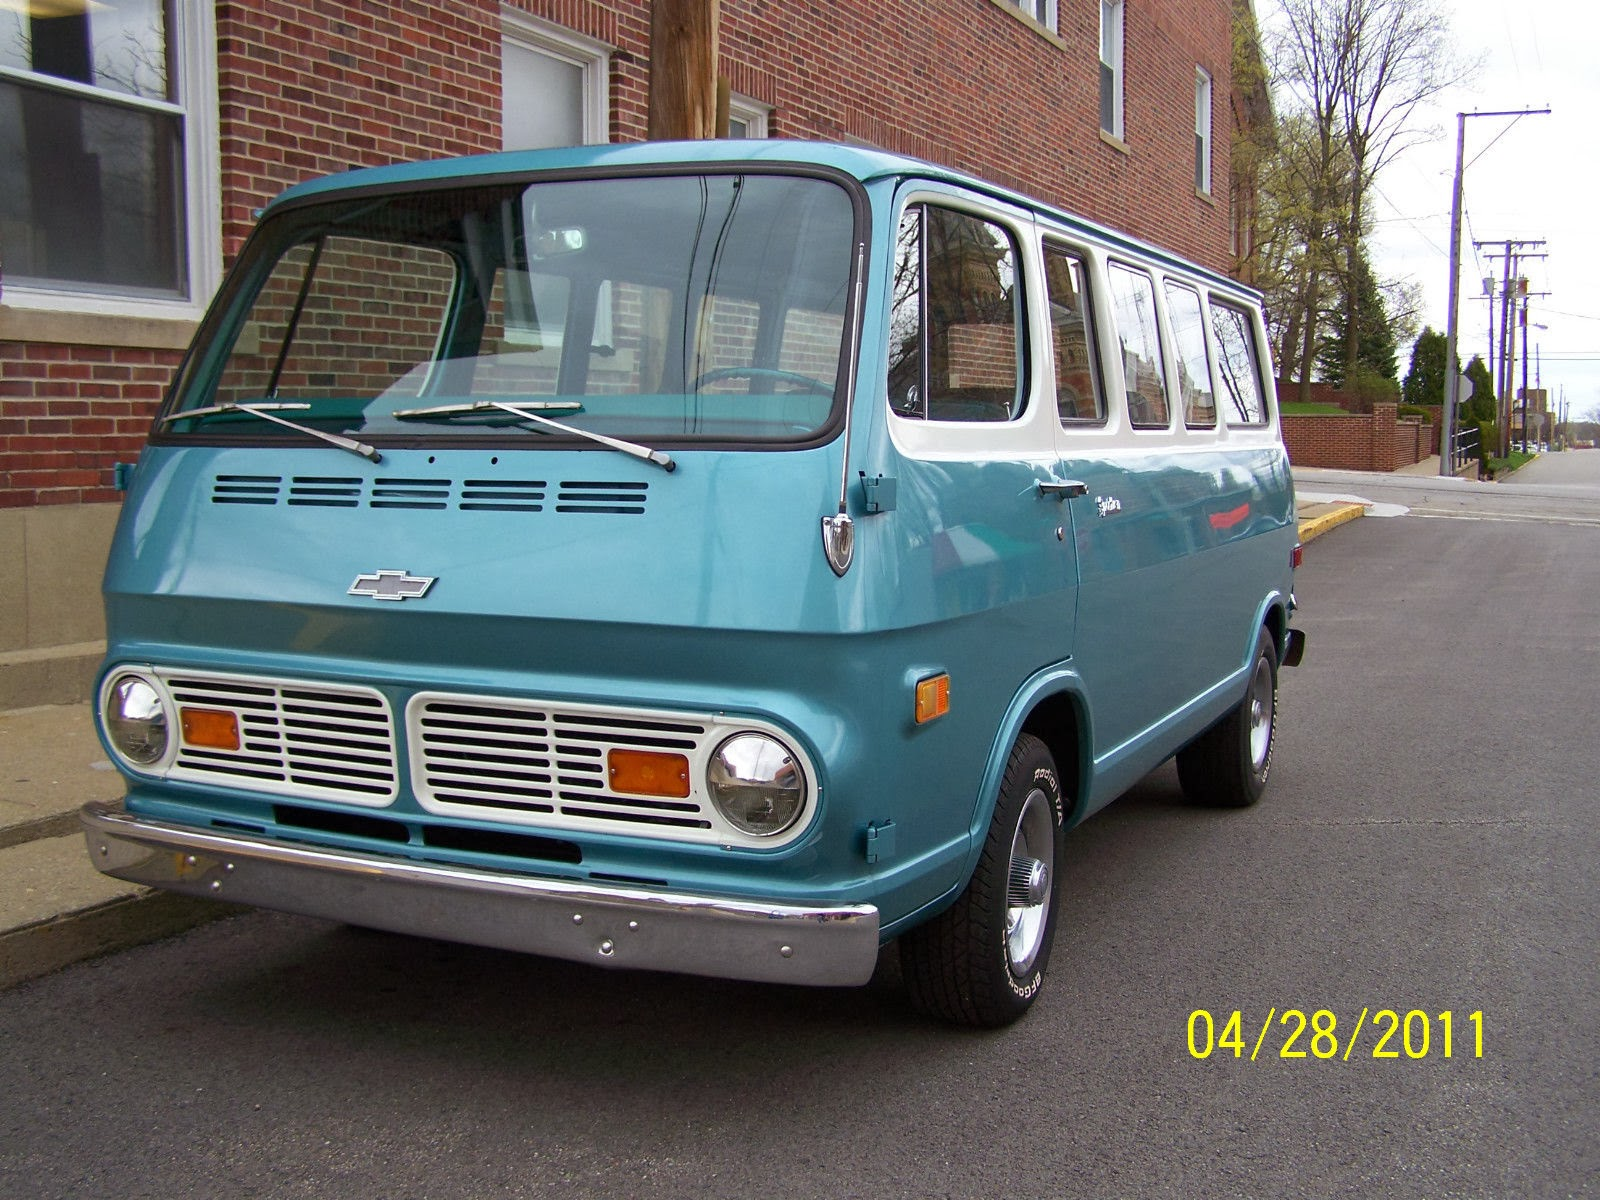 1966 Chevy Van Craigslist Autos Post